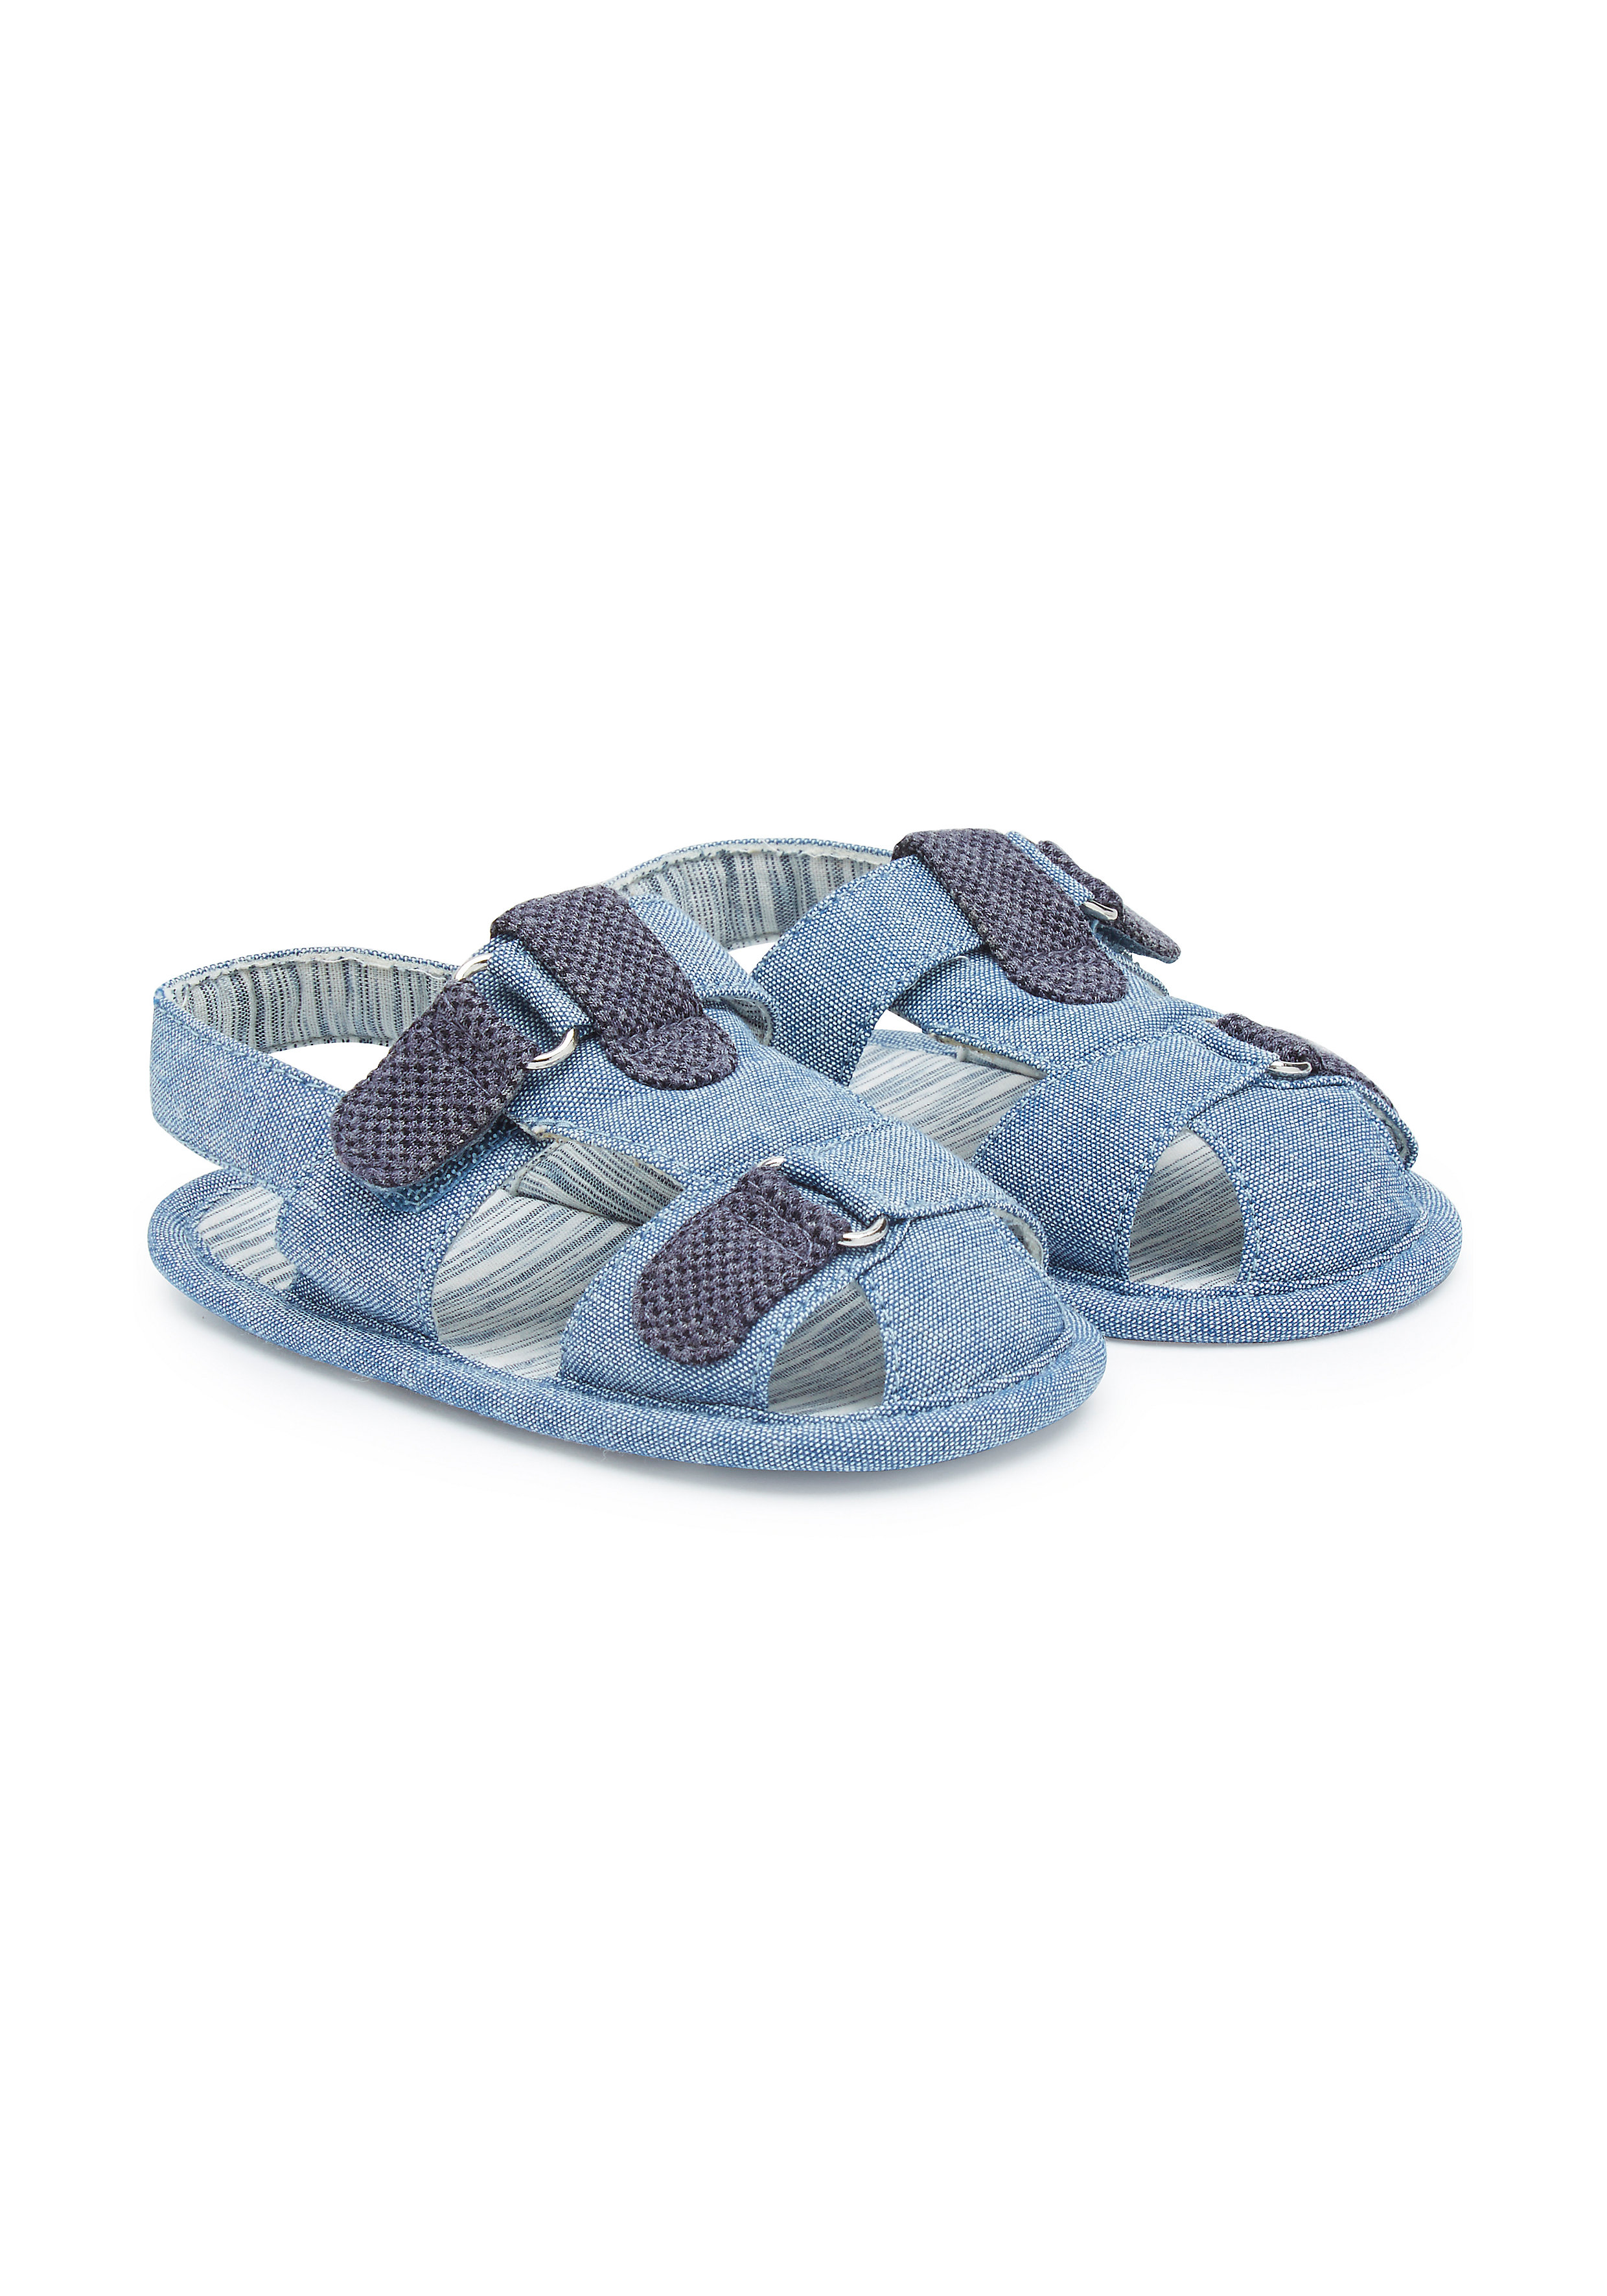 Mothercare | Boys Chambray Sandals - Blue